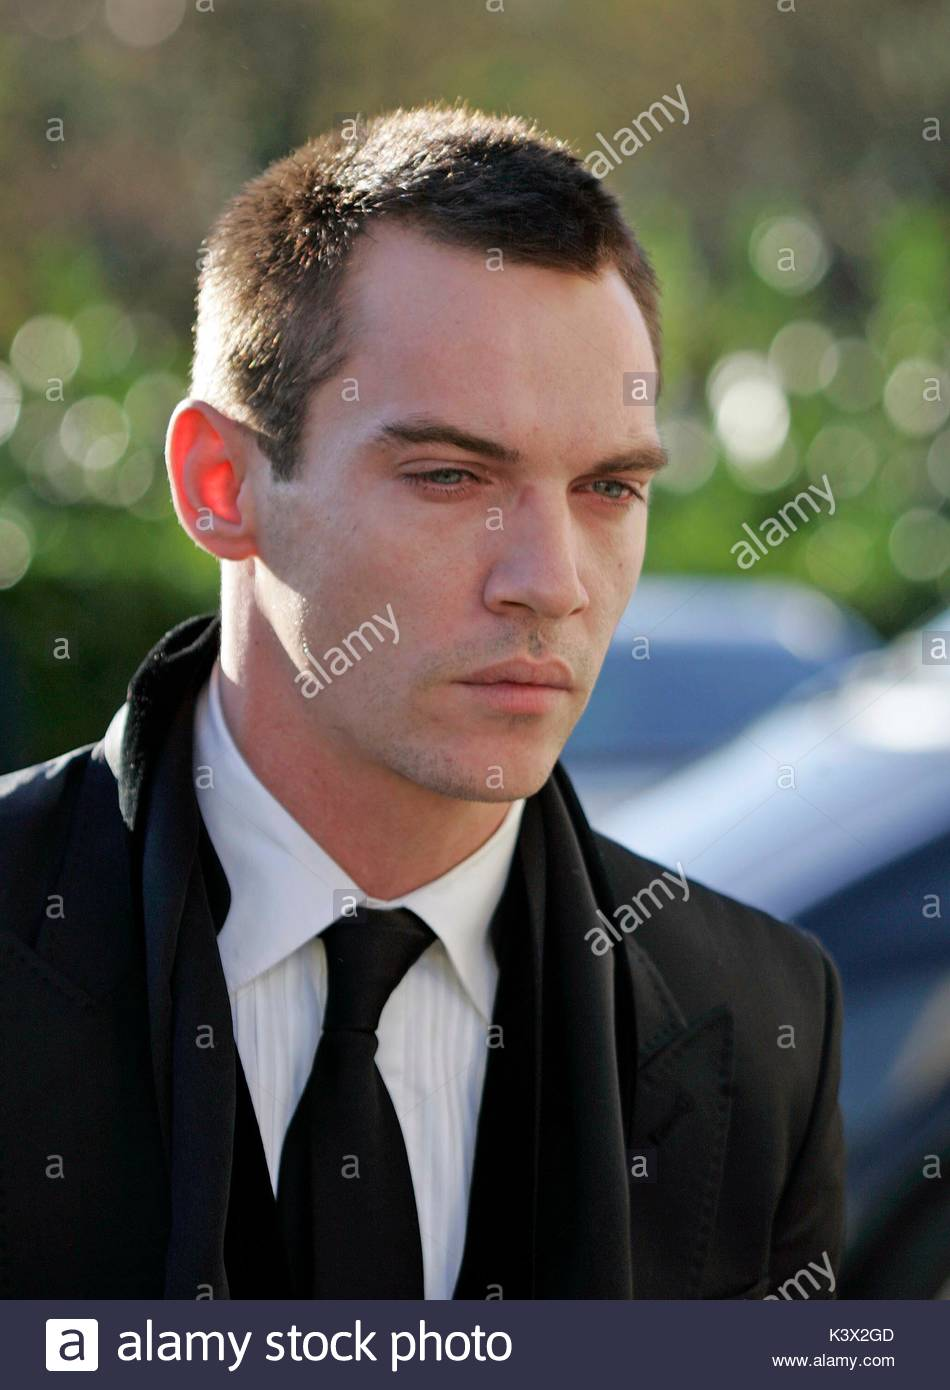 Jonathon Rhys Meyers at the funeral of Geraldine O'Keefe, mother of actor Jonathon Rhys Myers of 'The Tudors' - Stock Image